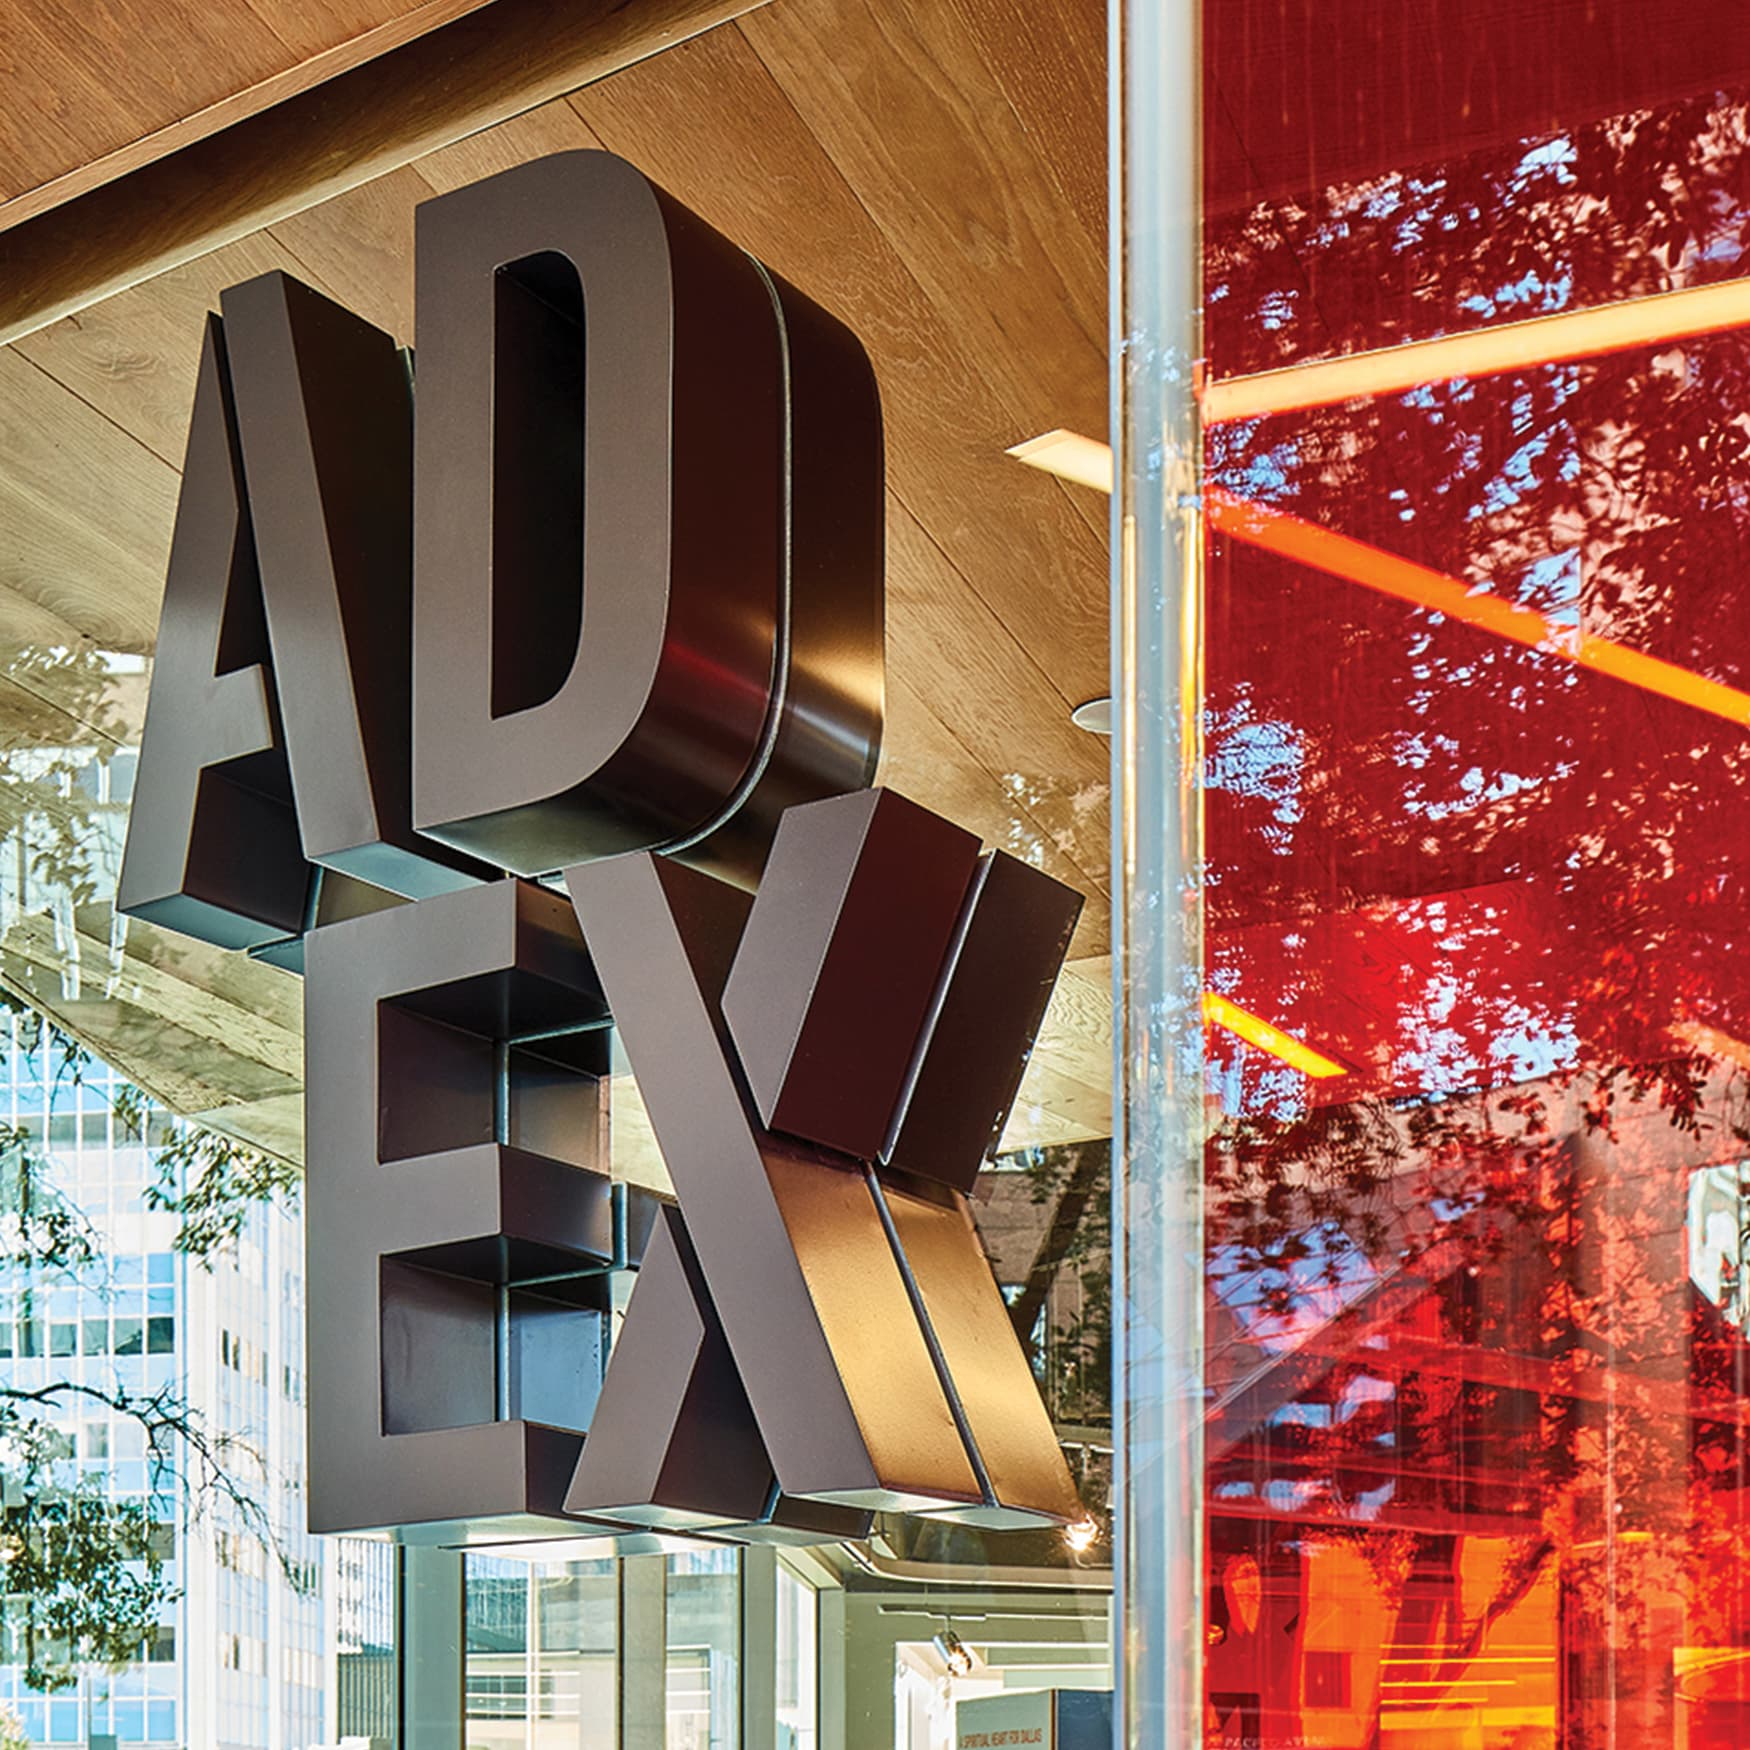 AD EX dimensional signage identity mounted to glass facade of architecture